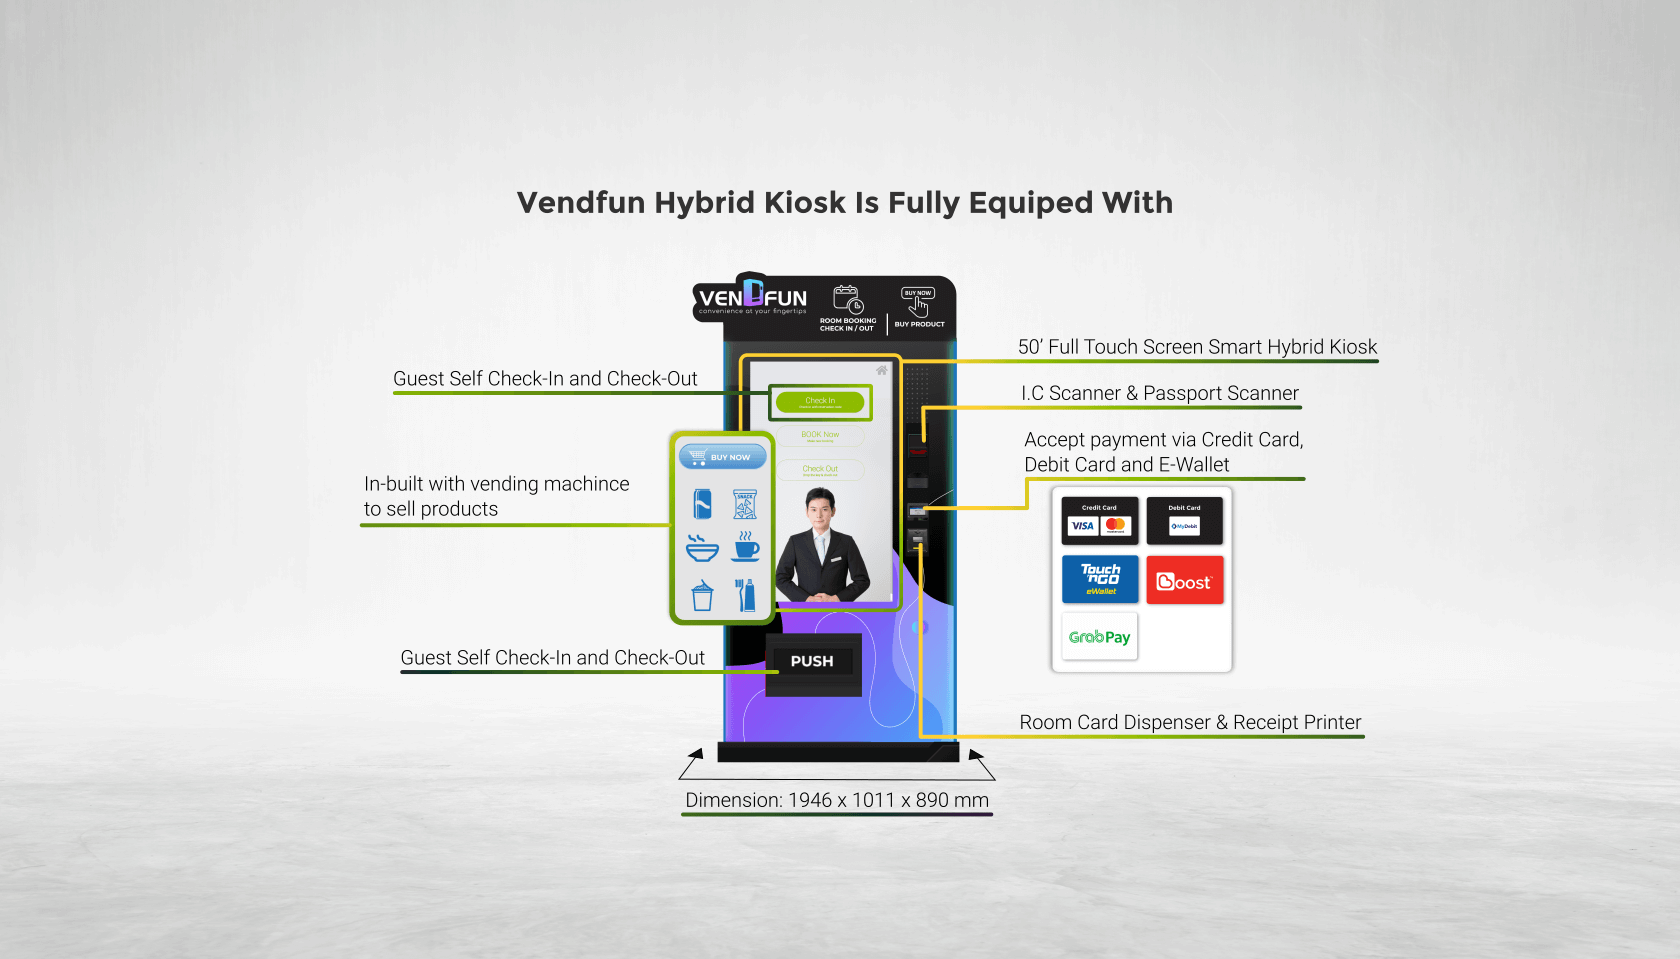 4_Vendfun Hybrid Kiosk Is Fully Equiped With (1)